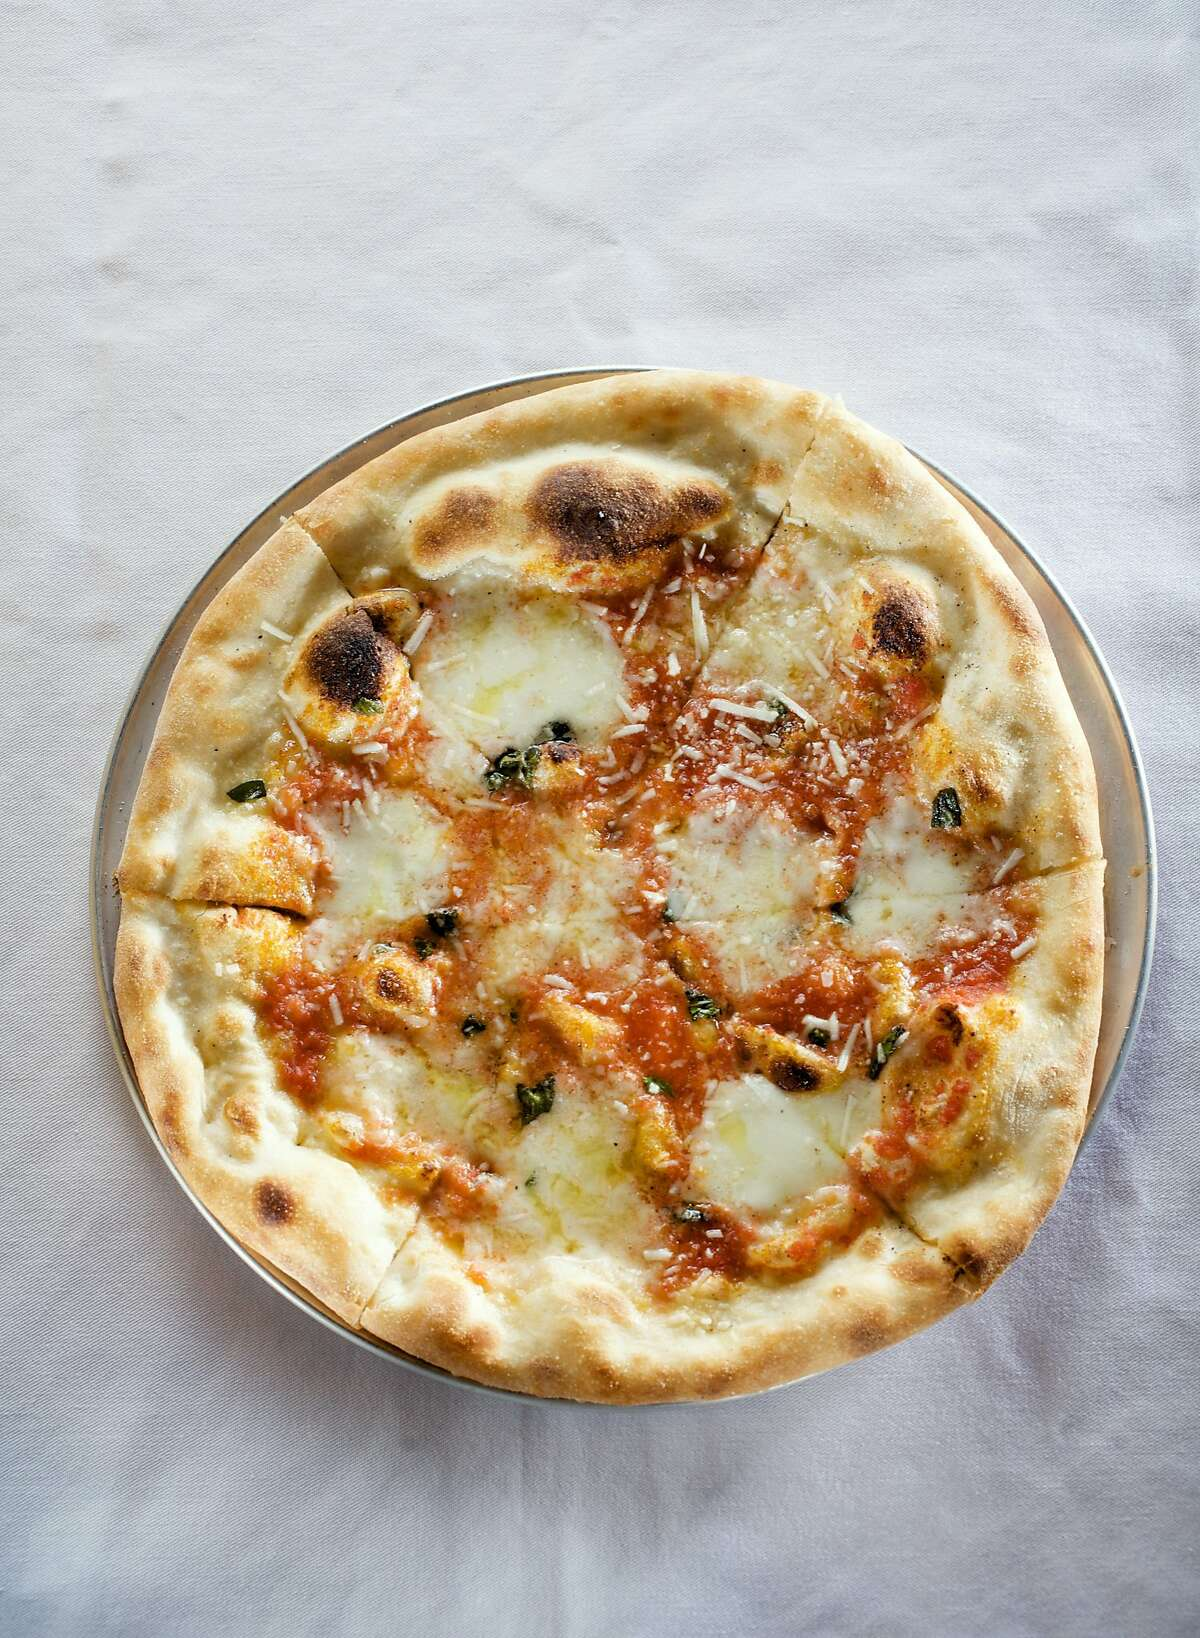 OAKLAND, CALIF - MARCH 7: The Bufala Mozzarella and Oregano Pizza at Dopo. BY JOHN LEE / SPECIAL TO THE CHRONICLE